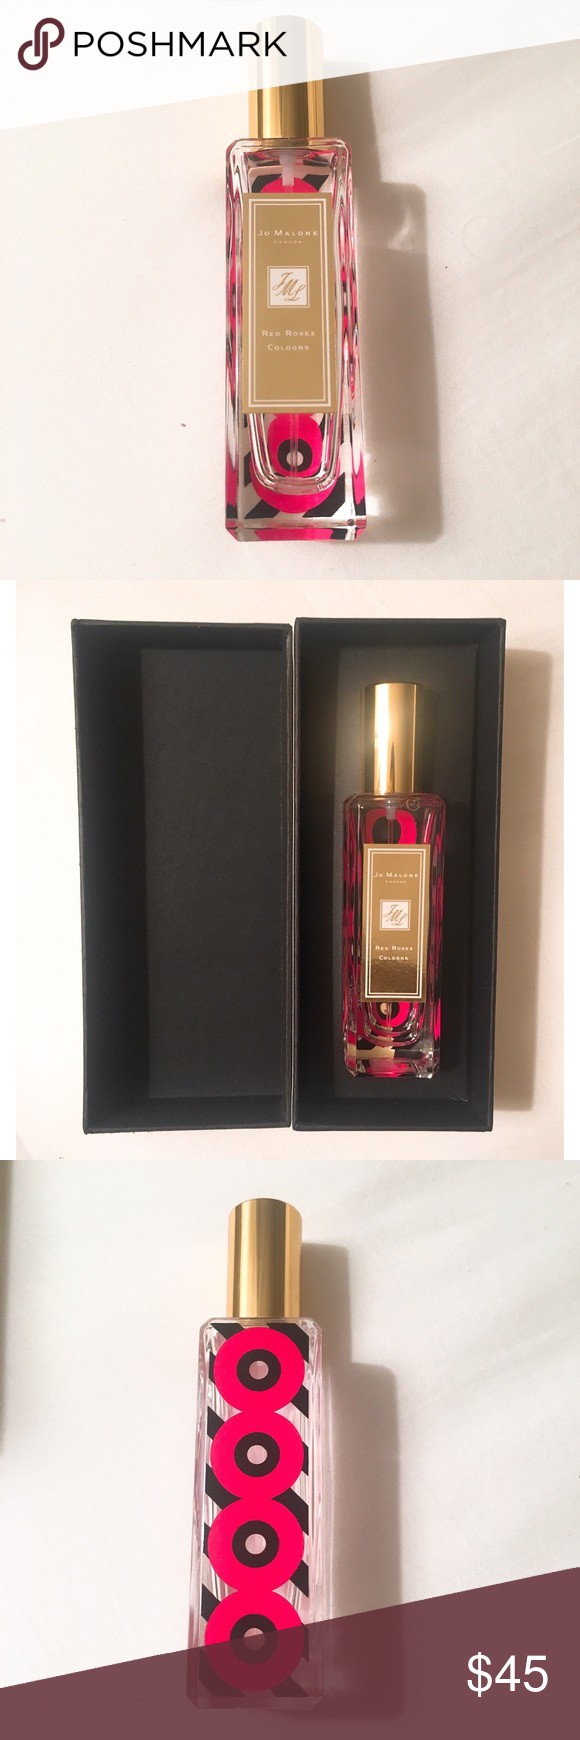 Jo Malone limited edition red roses 30ml Jo Malone limited edition red roses 30ml - a quarter used. Comes with box. Original product purchased at London heathrow airport. Selling as I love it but realized I had a larger partially used bottle of the same scent! Jo Malone Makeup